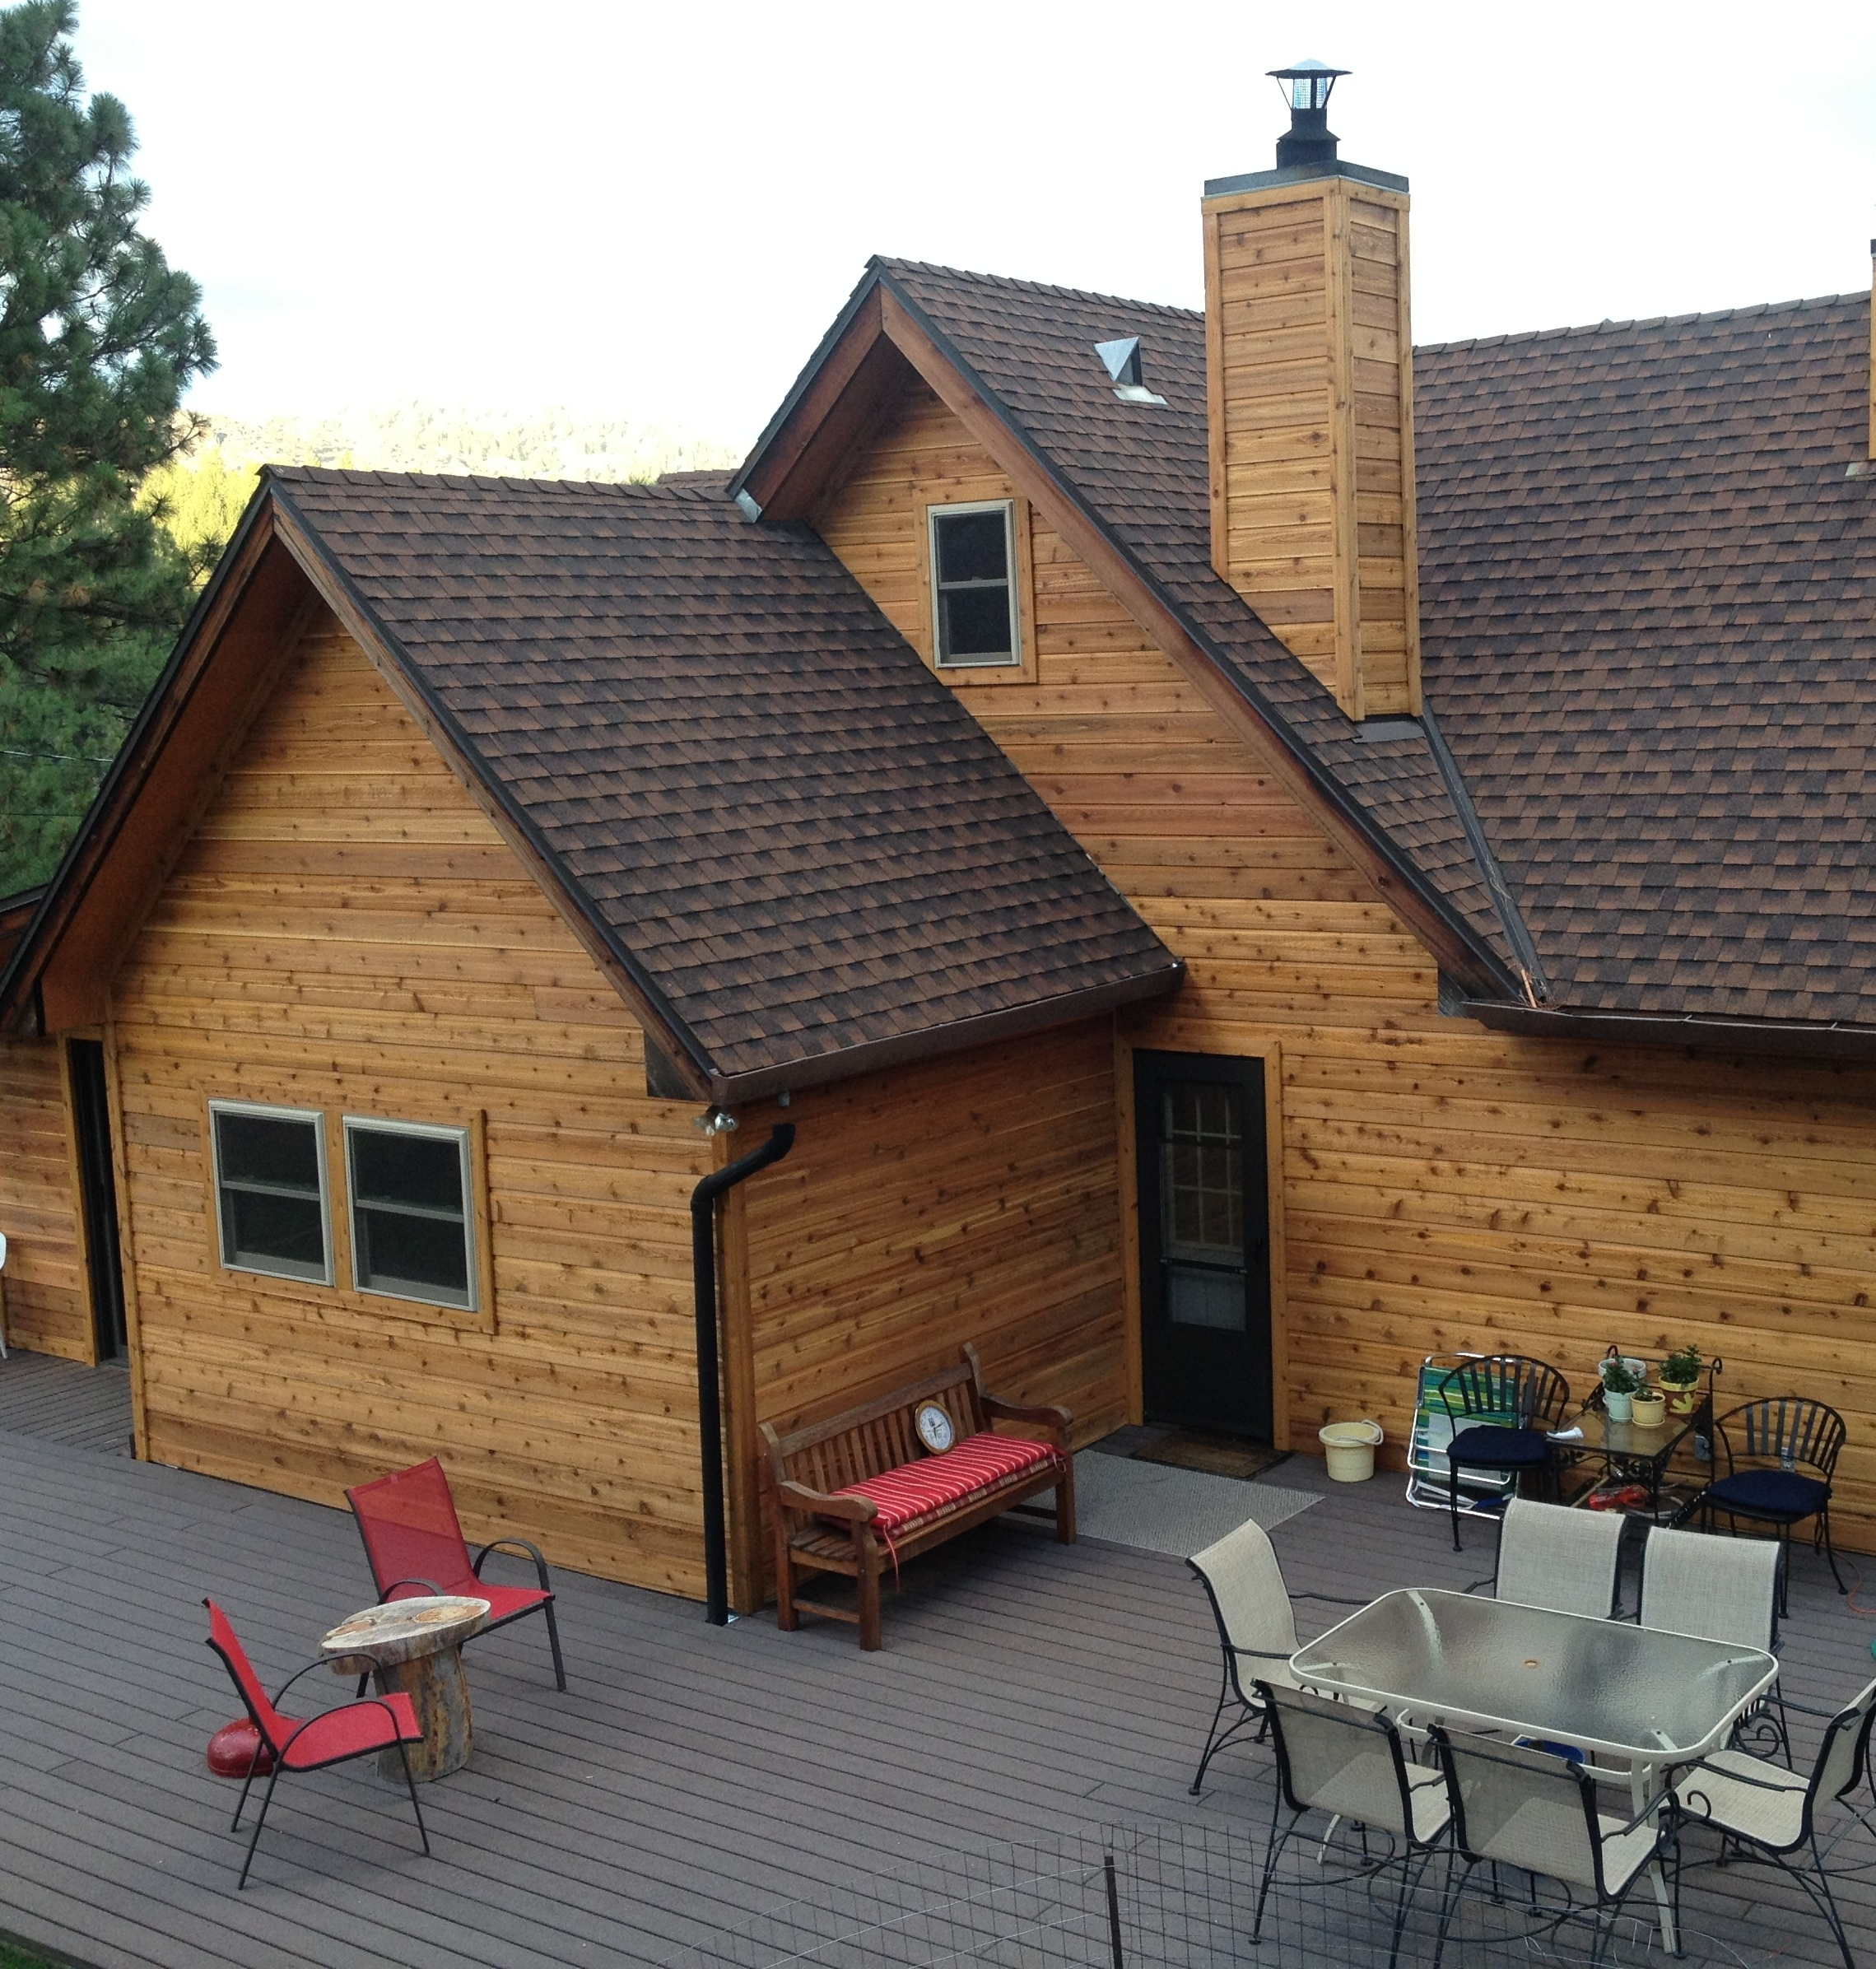 Cedar country lumber in burlington wa 98233 for Cedar creek siding reviews